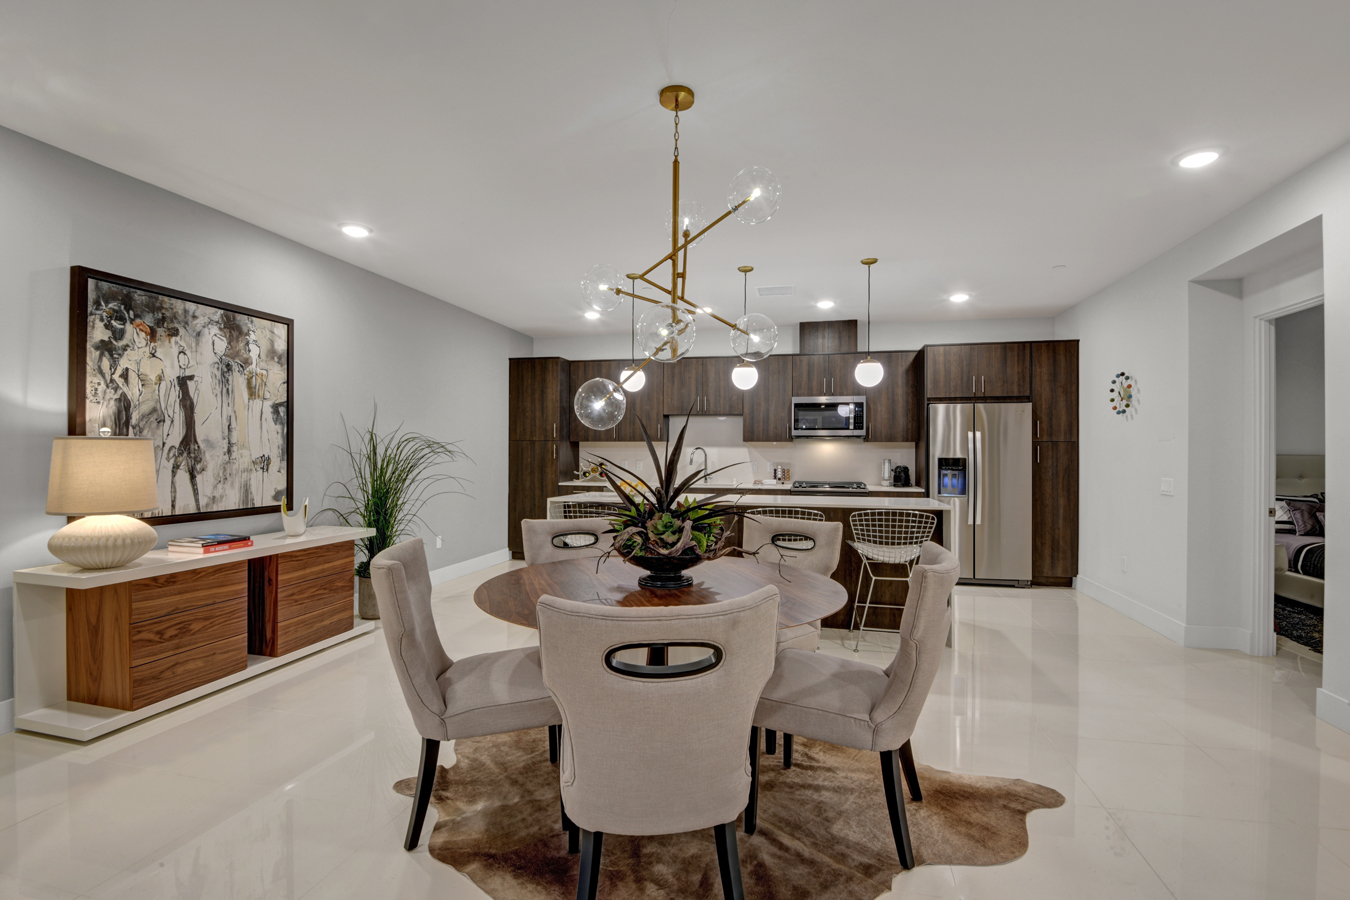 1500-upstairs-dining-room-to-kitchen-night